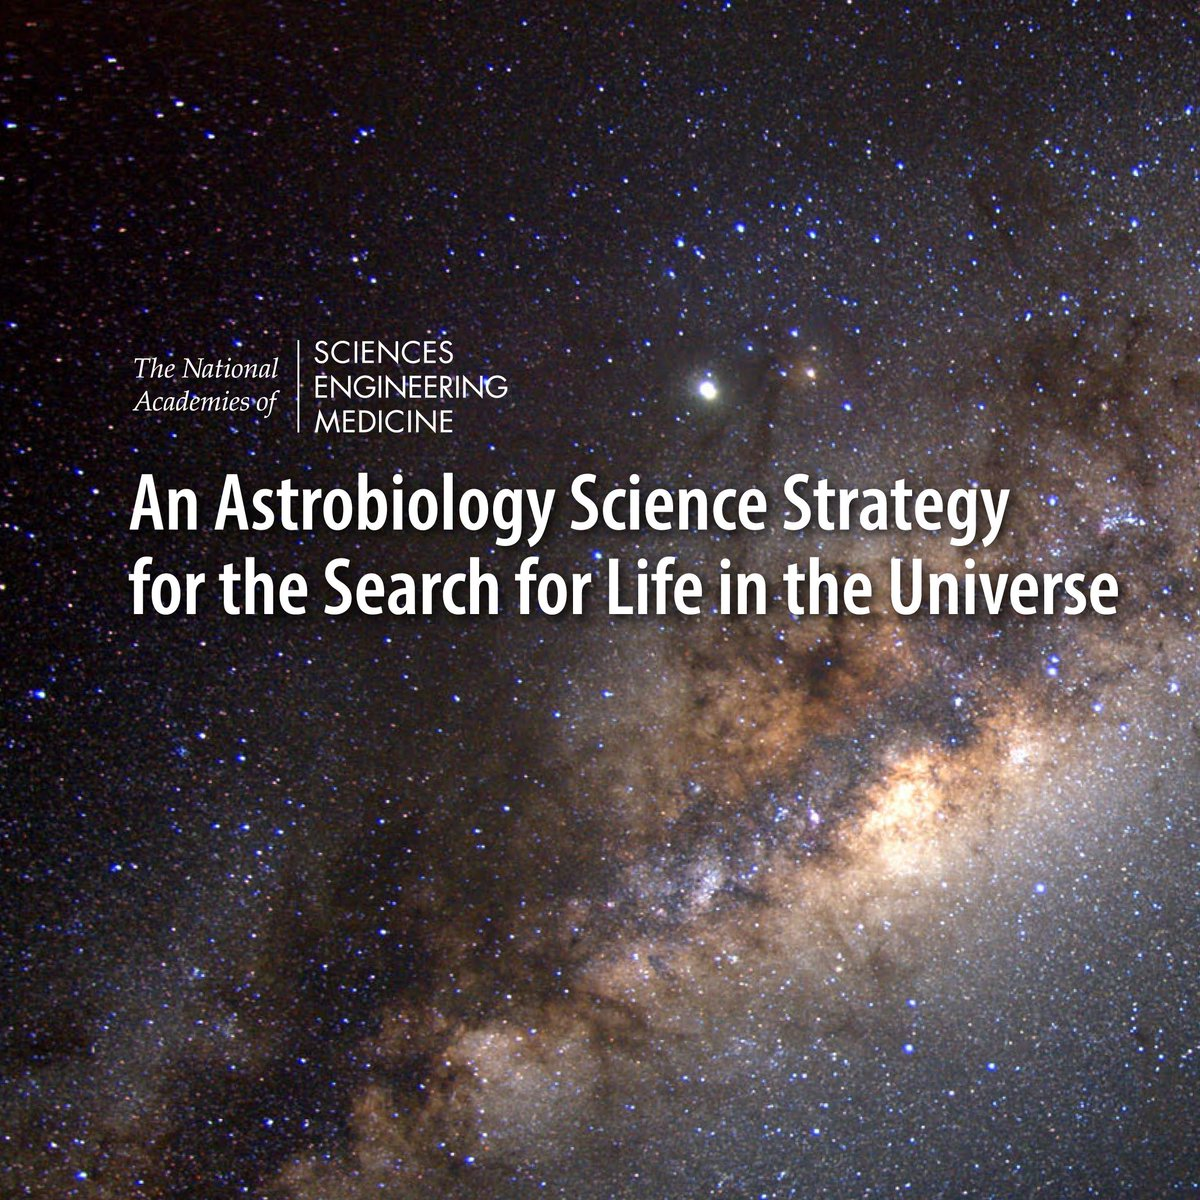 #Astrobiology, the study of the origin, evolution, & future of life in the , is#universe a rapidly changing field. Our report says that  sho@NASAuld ramp up efforts in developing mission-ready life detection technologies to advance the : #searchforlifehttps://t.co/UzBmFQW1io